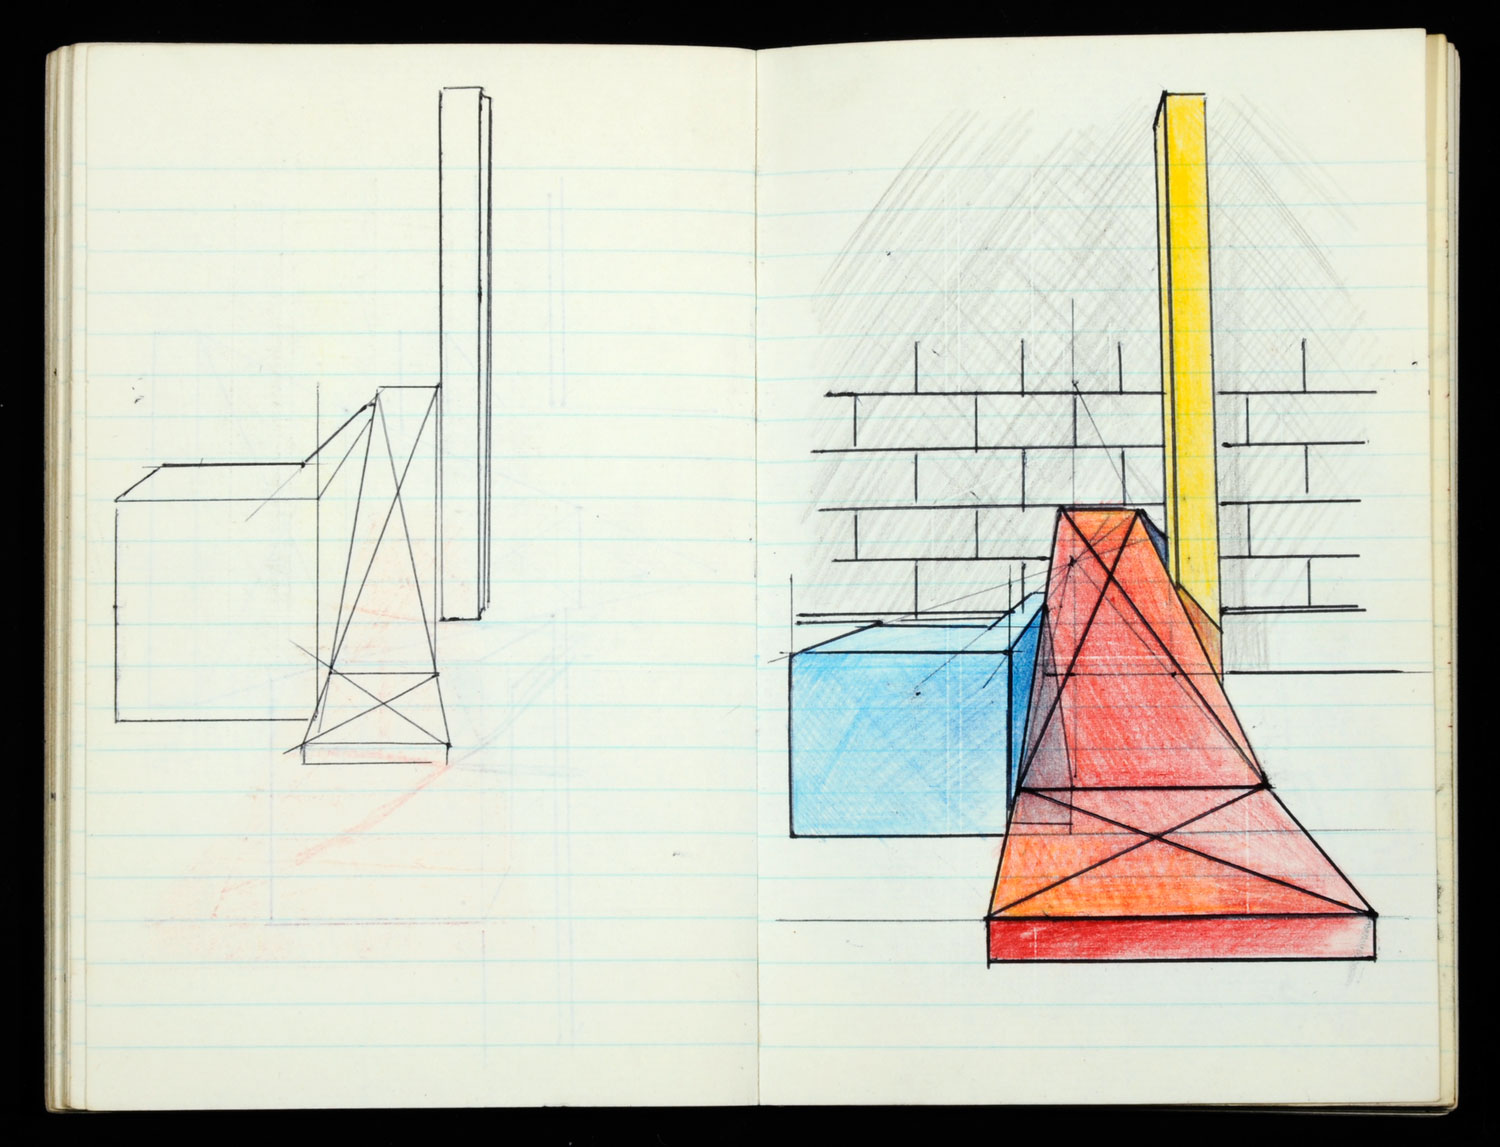 Keir Smith, sketchbook (c. 1973) Archive reference: 2012.27/A/26